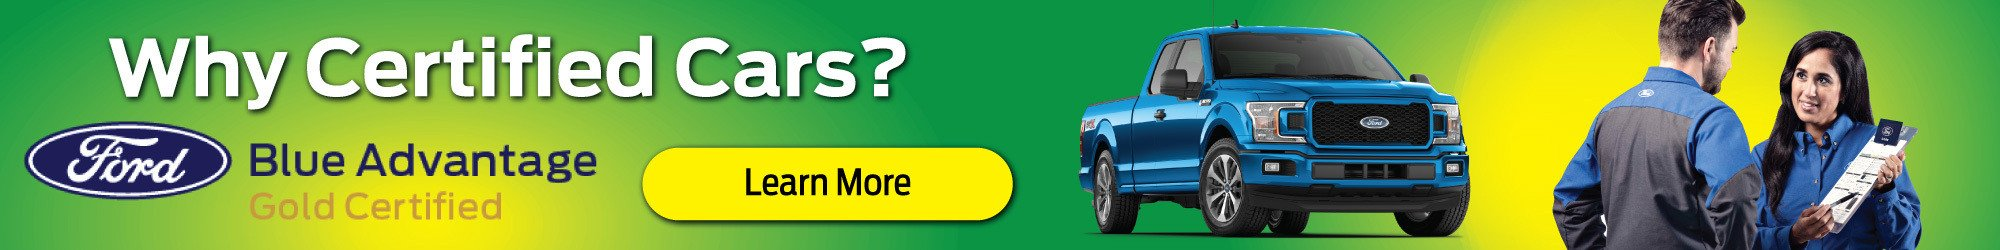 Mullinax Ford of Central Florida - Why Buy Certified Pre-owned?